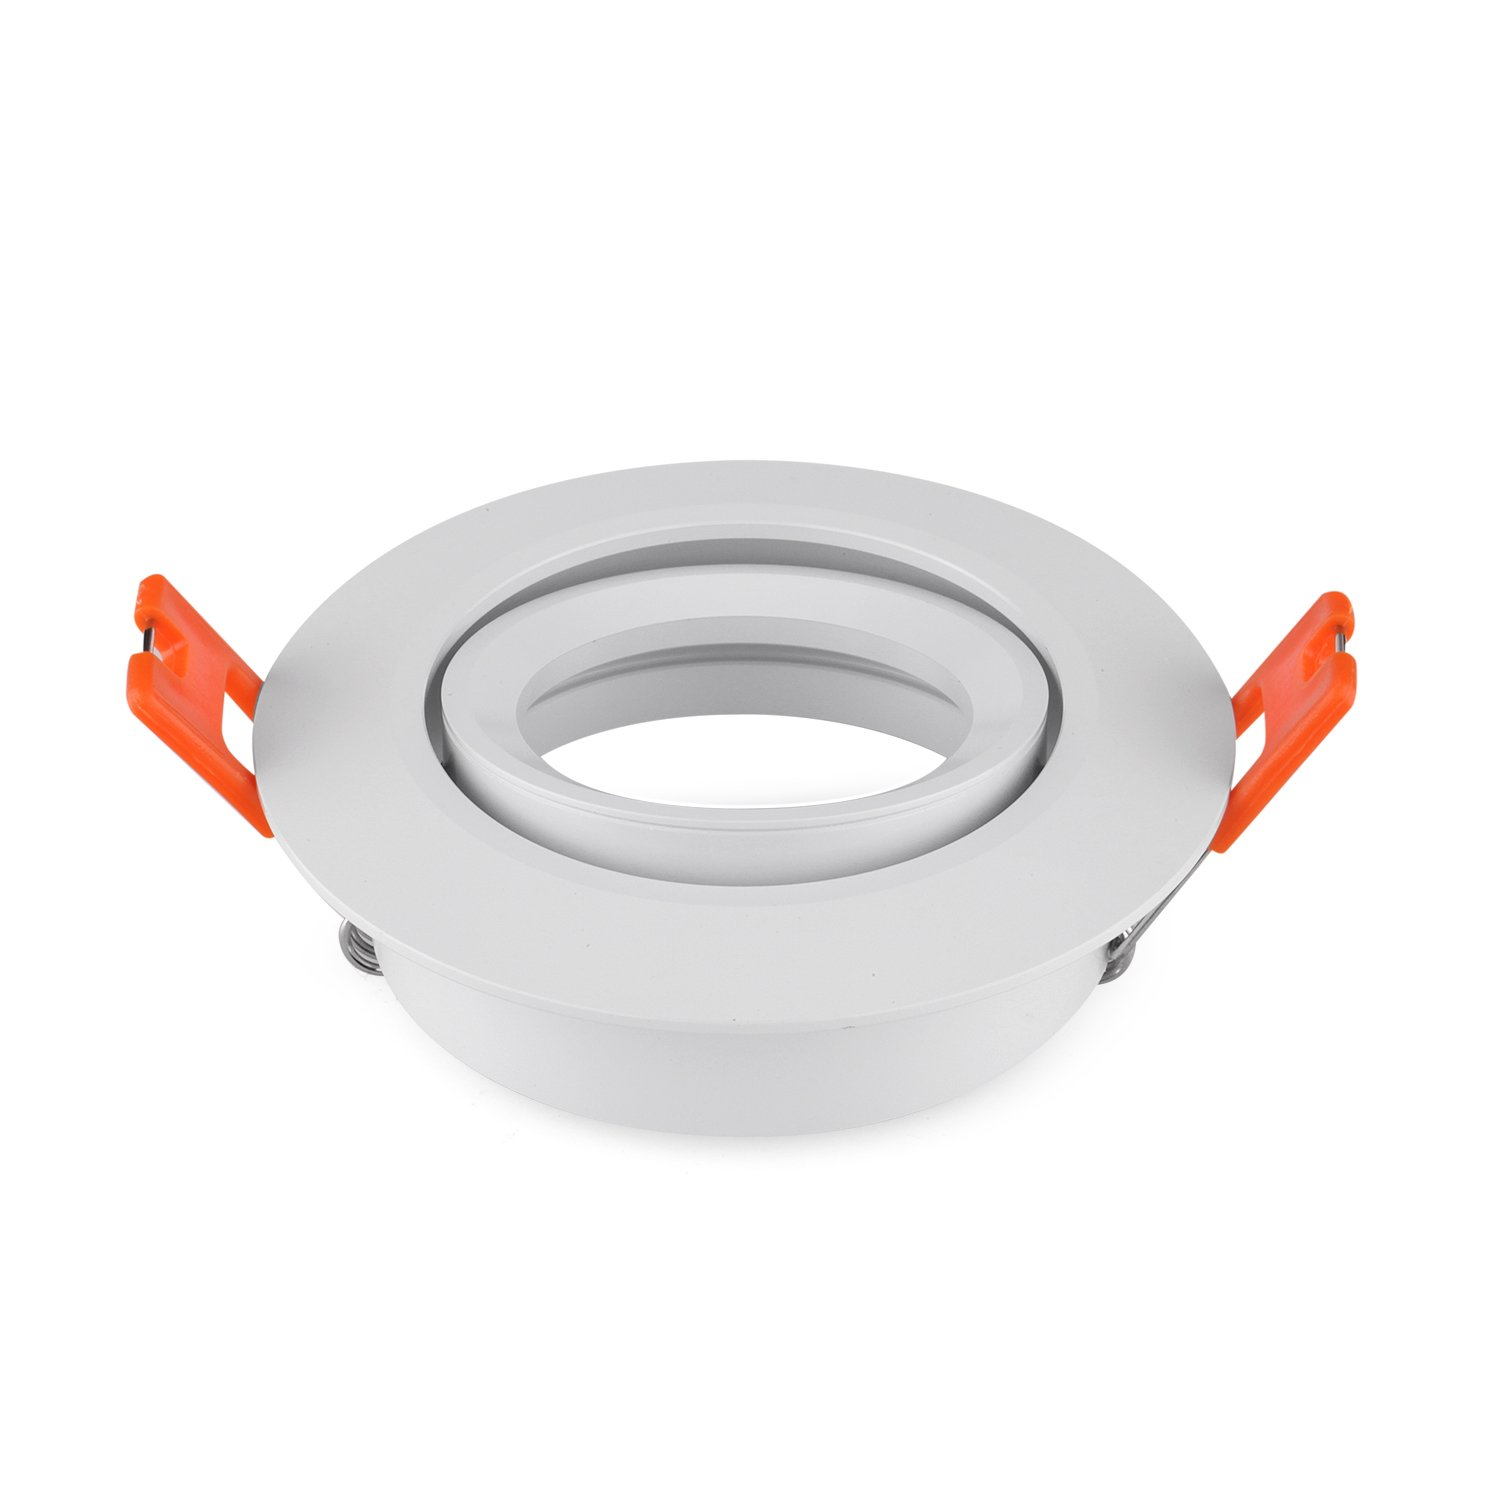 Pack of 2 recessed lisa white includes gu5 3 mr16 light fitting without light socket cut out 70mm